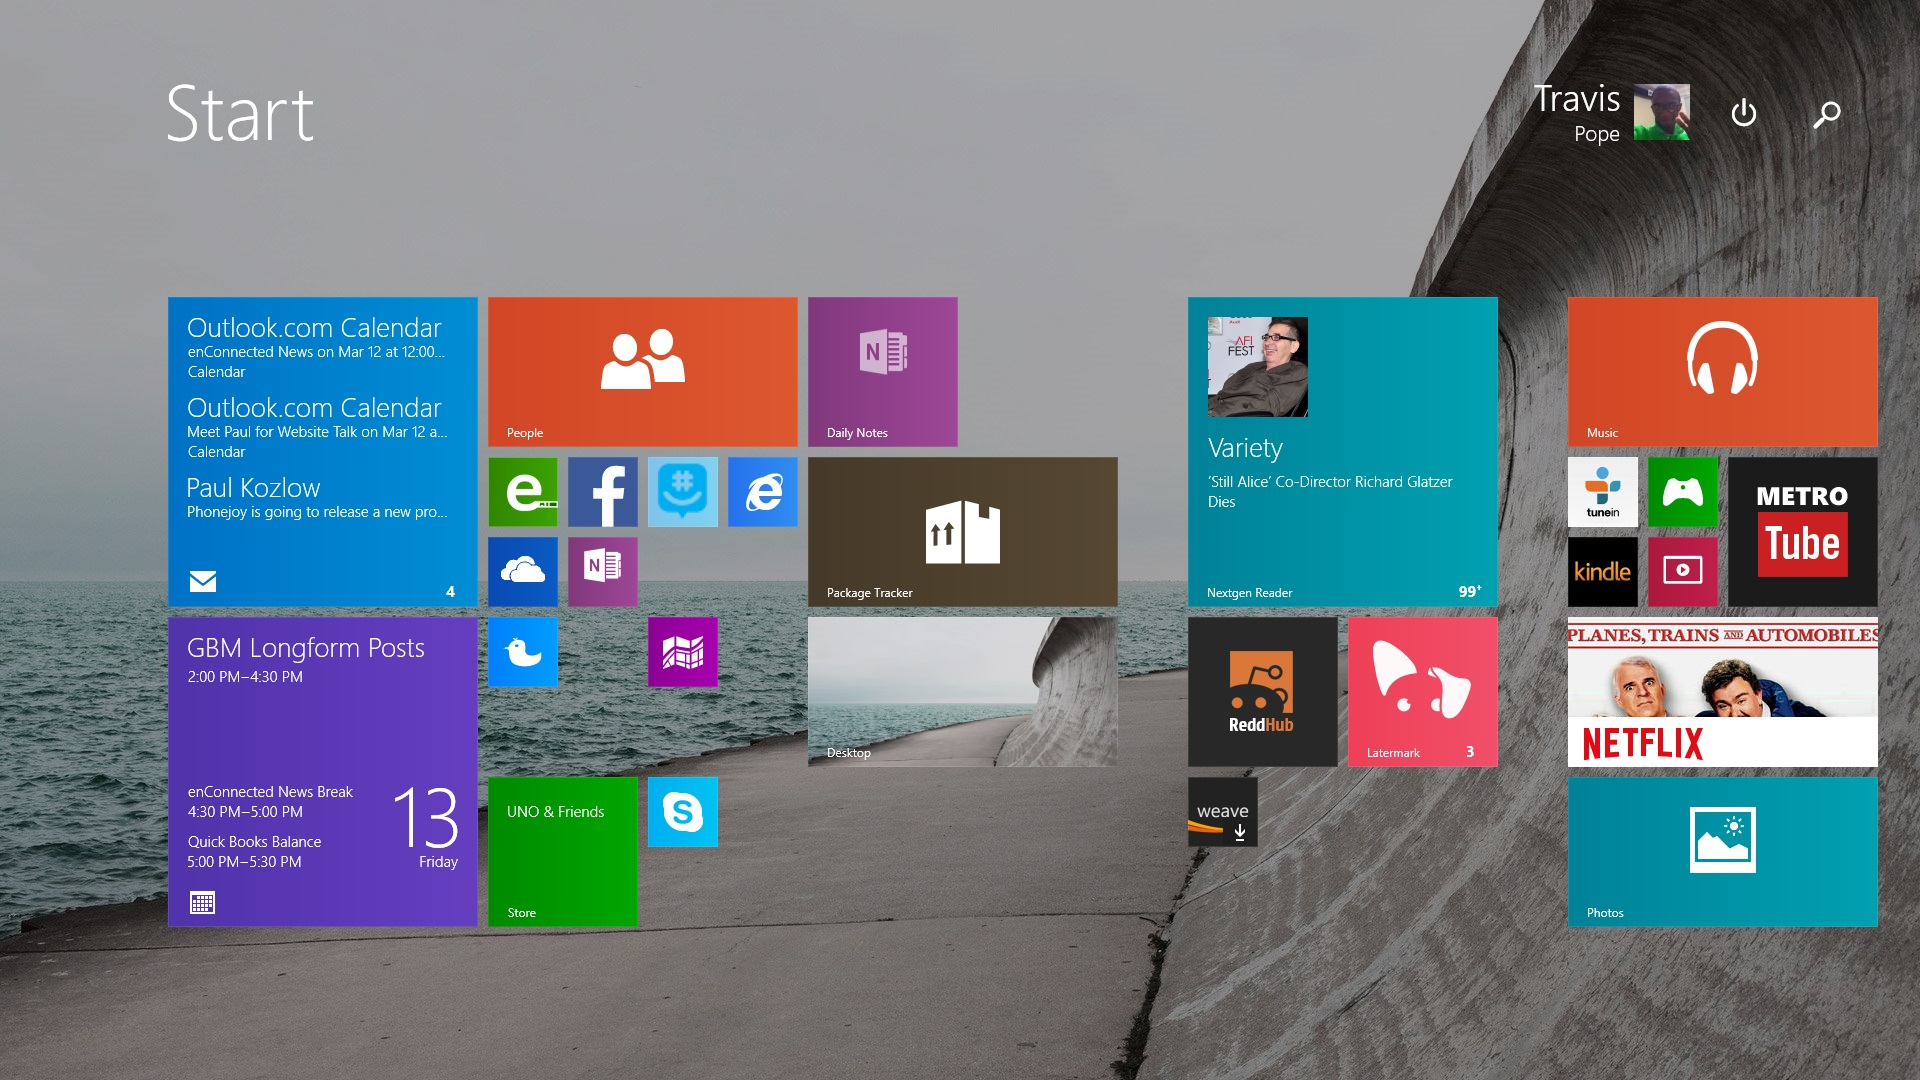 21 Windows 81 Tips (1) Here's How To Watch Youtube Videos